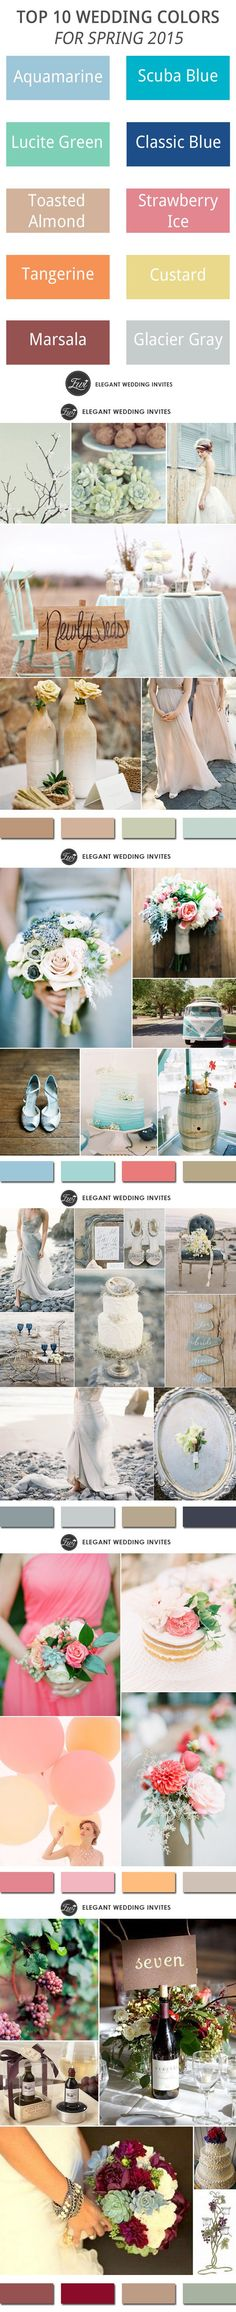 After checking the whole 2015 wedding color trends (check it HERE), let's turn on the spring wedding colors. We'll see a move toward the cooler and softer side for 2015 spring colors, an eclectic, ethereal mix of unde. 2015 Wedding Trends, 2015 Trends, Wedding 2015, Spring Wedding, Wedding Color Schemes, Wedding Colors, Colour Schemes, Color Combos, Perfect Wedding